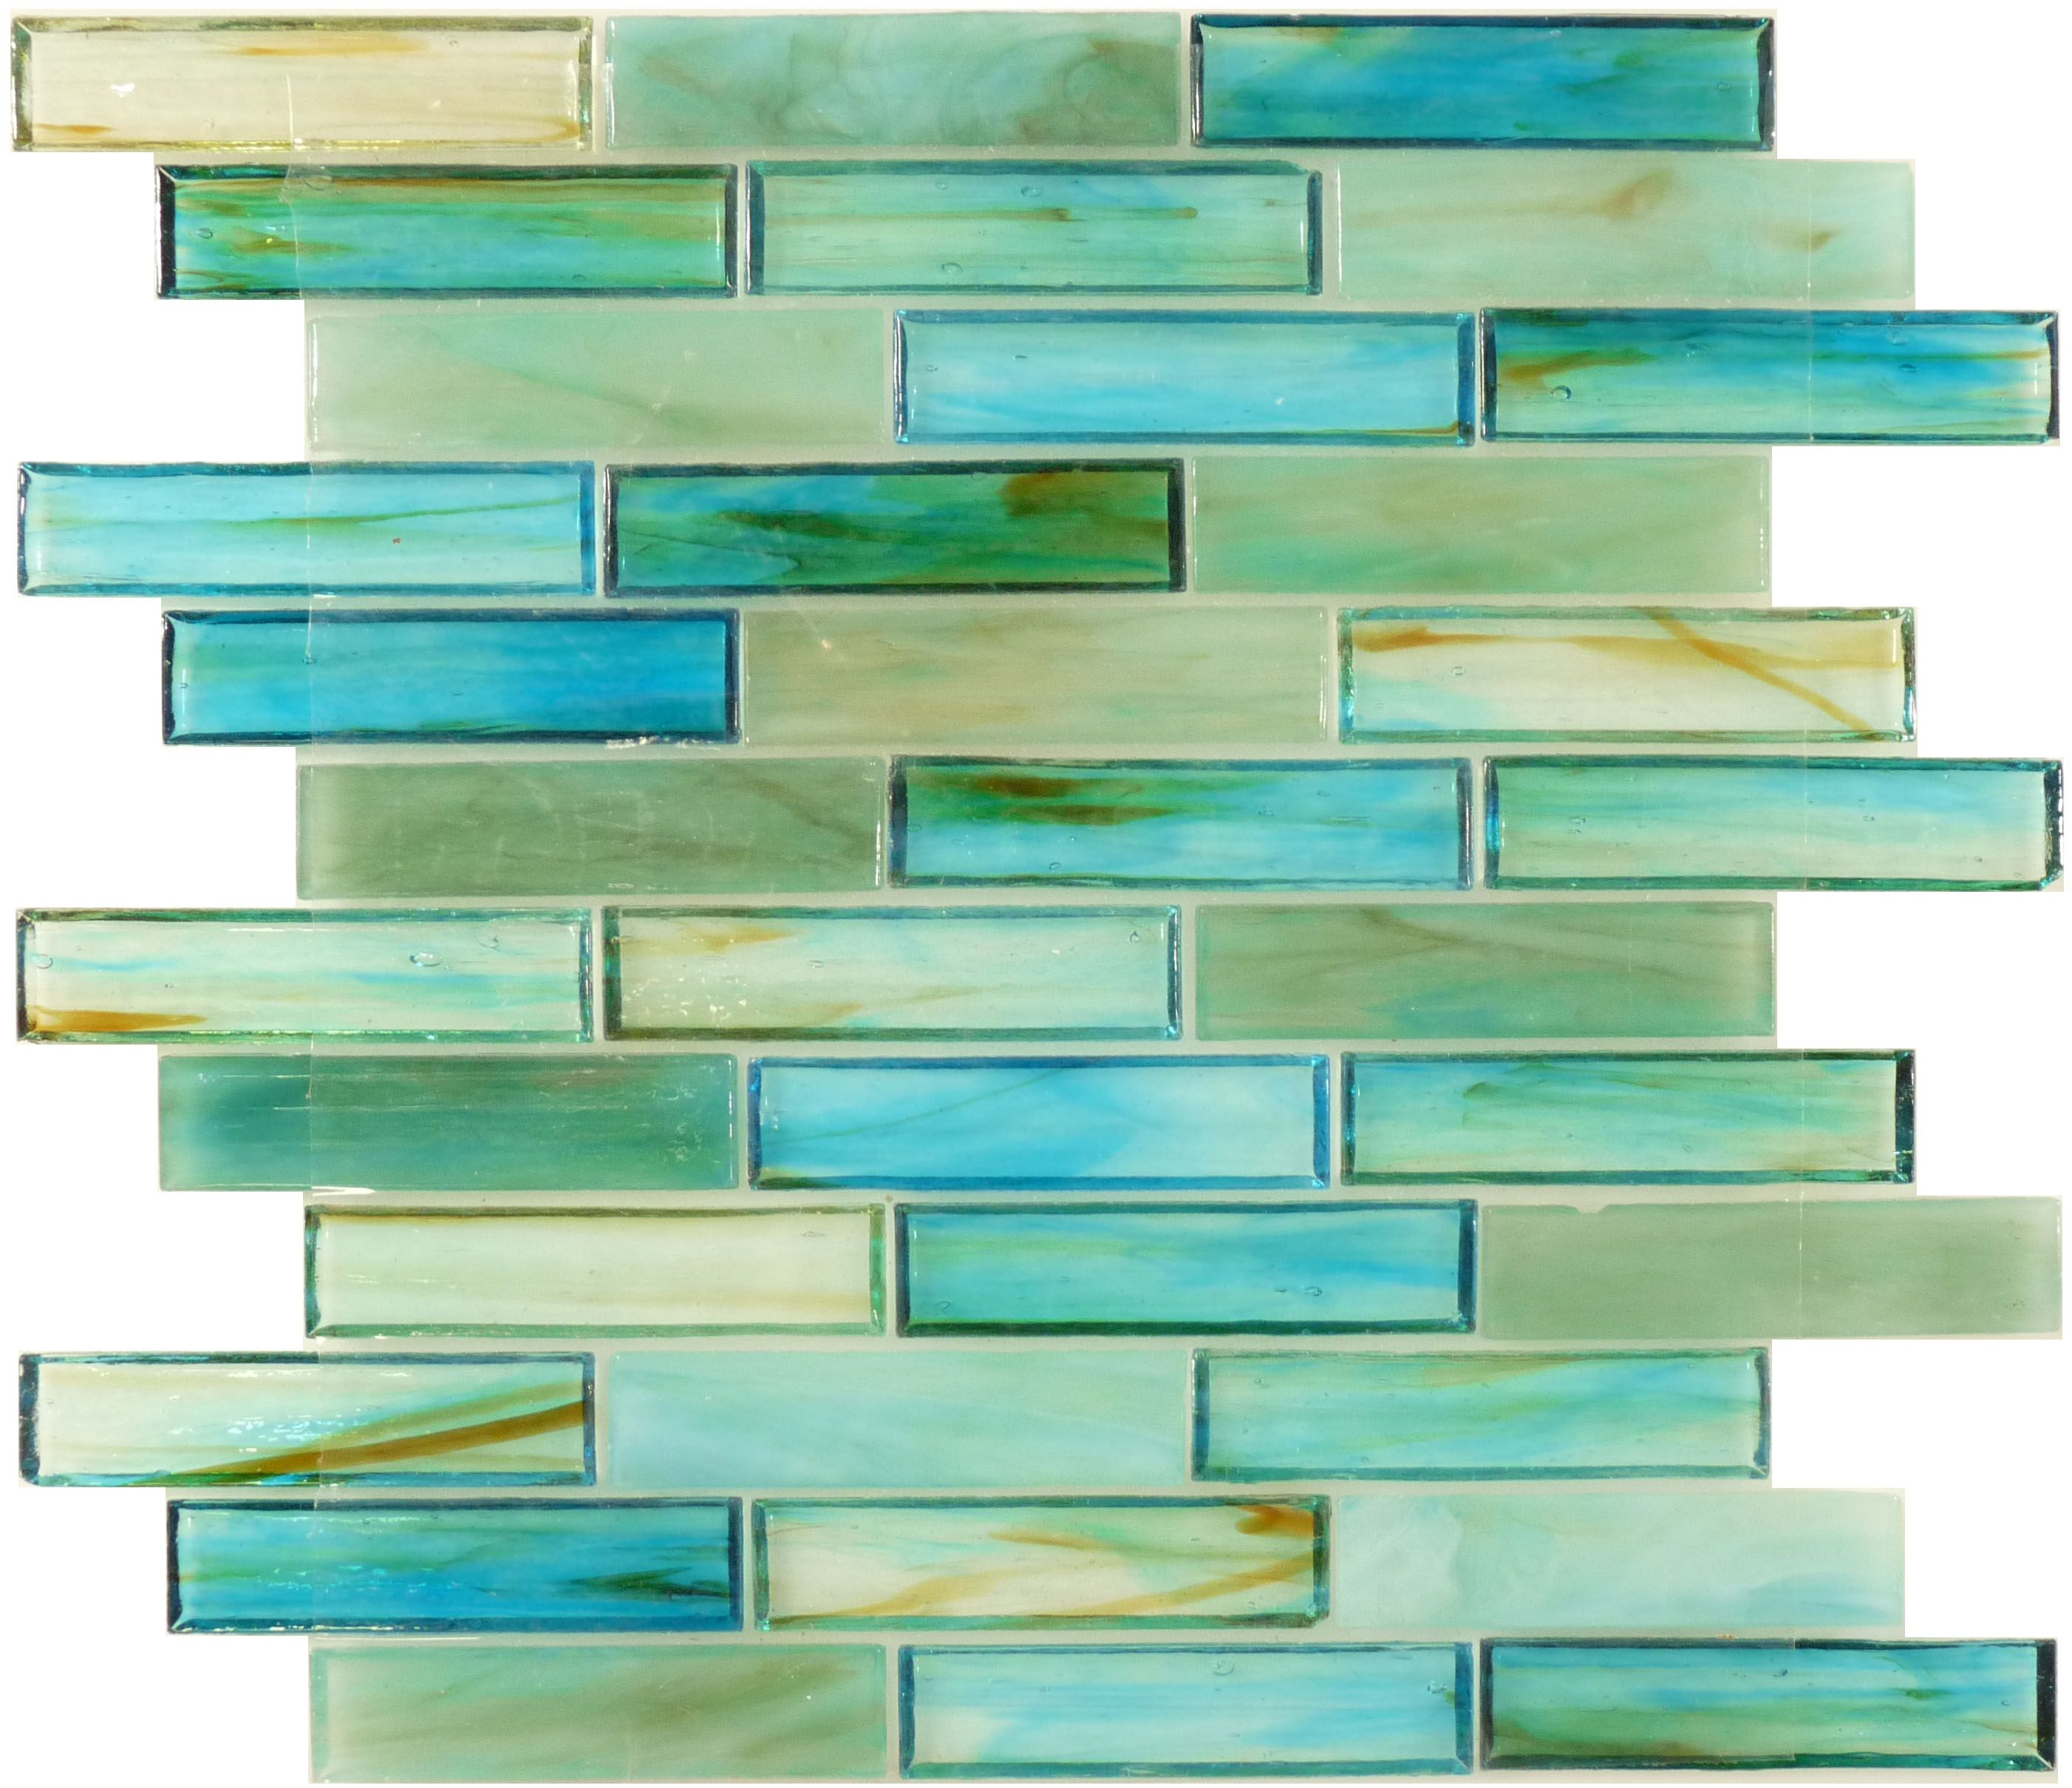 Glass stone mosaic kitchen backsplash photo marazzi pictures to pin on - Botanical Glass Sea Glass Tiles 1 X 4 Turquoise Glossy Backsplash For Kitchenglass